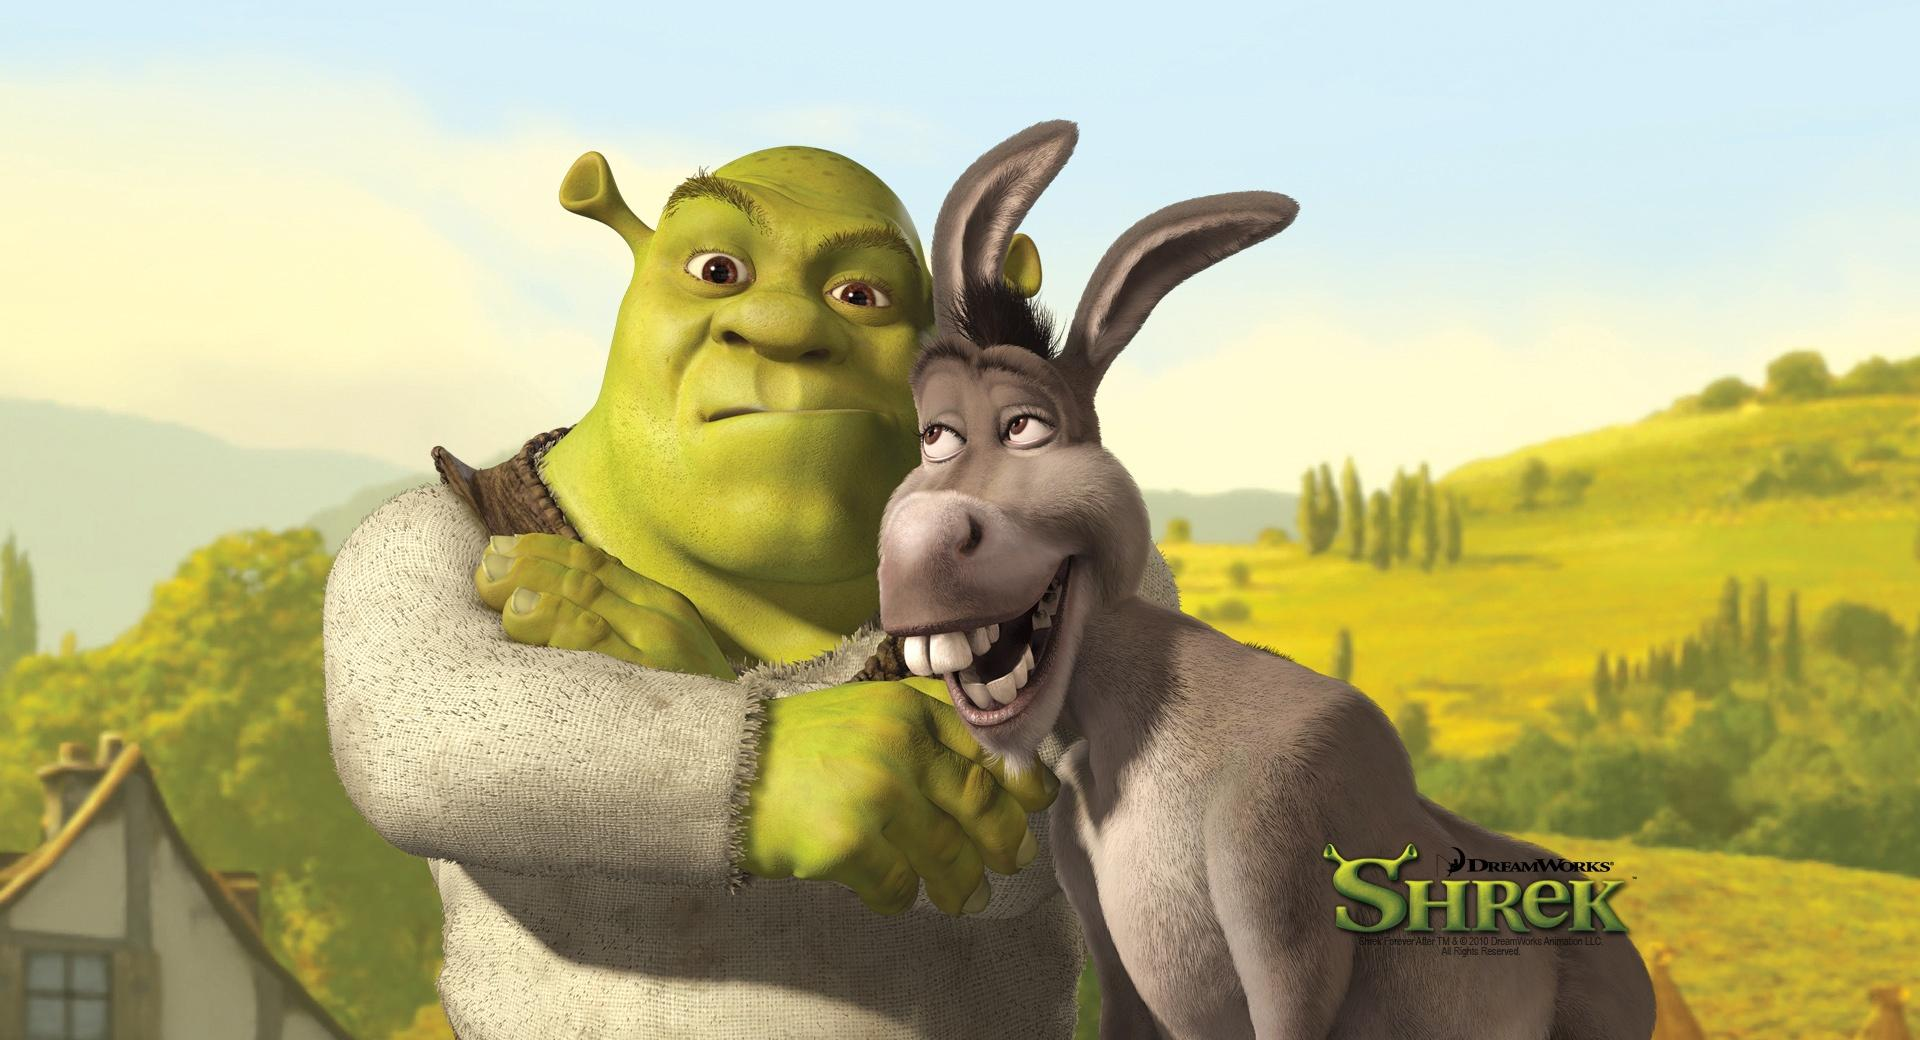 Shrek And Donkey, Shrek The Final Chapter wallpapers HD quality